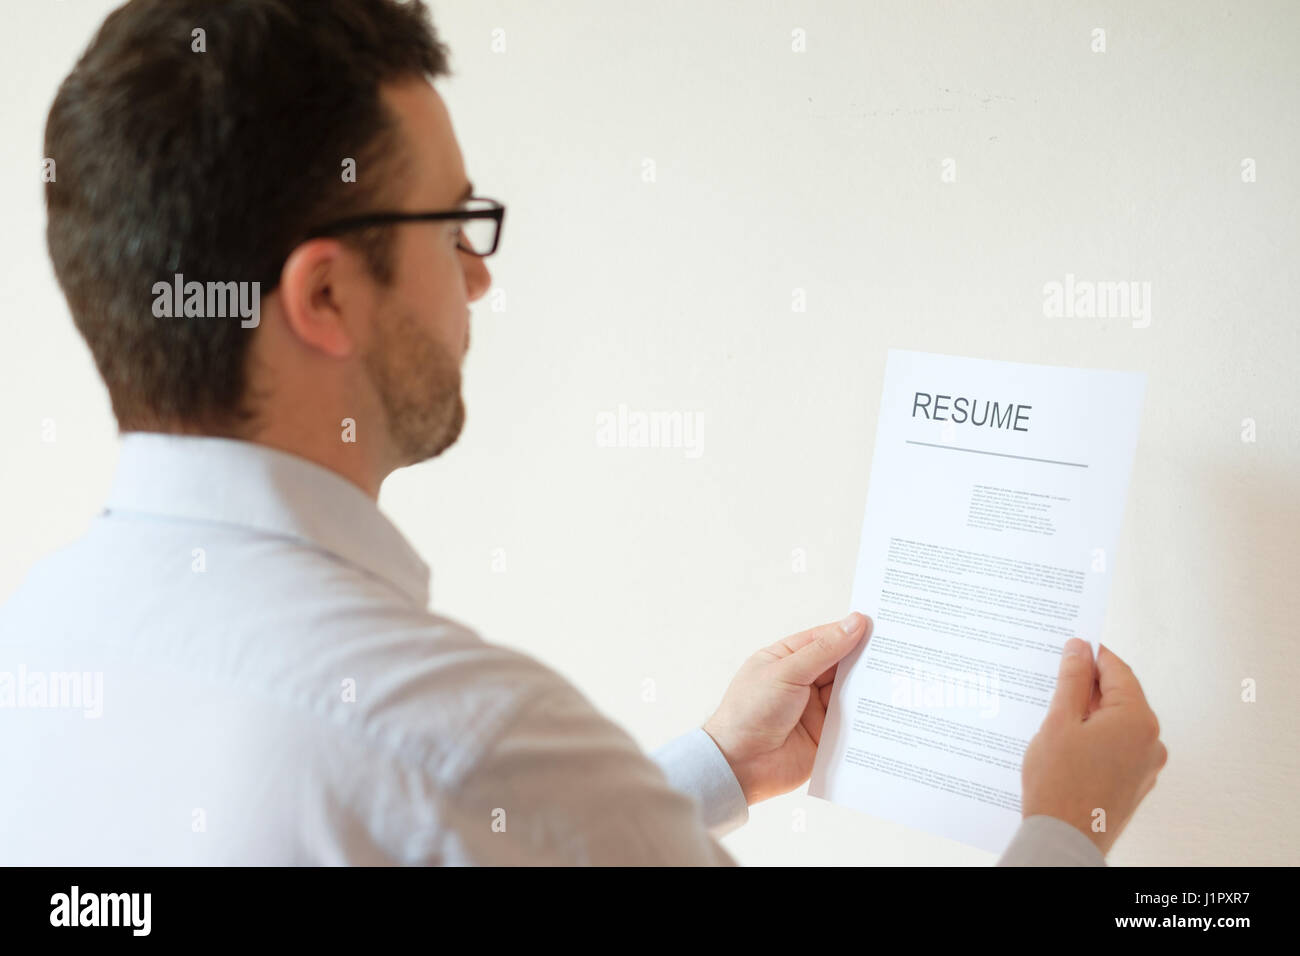 Man With Resume And Work Career Ready To Find A Job Stock Photo